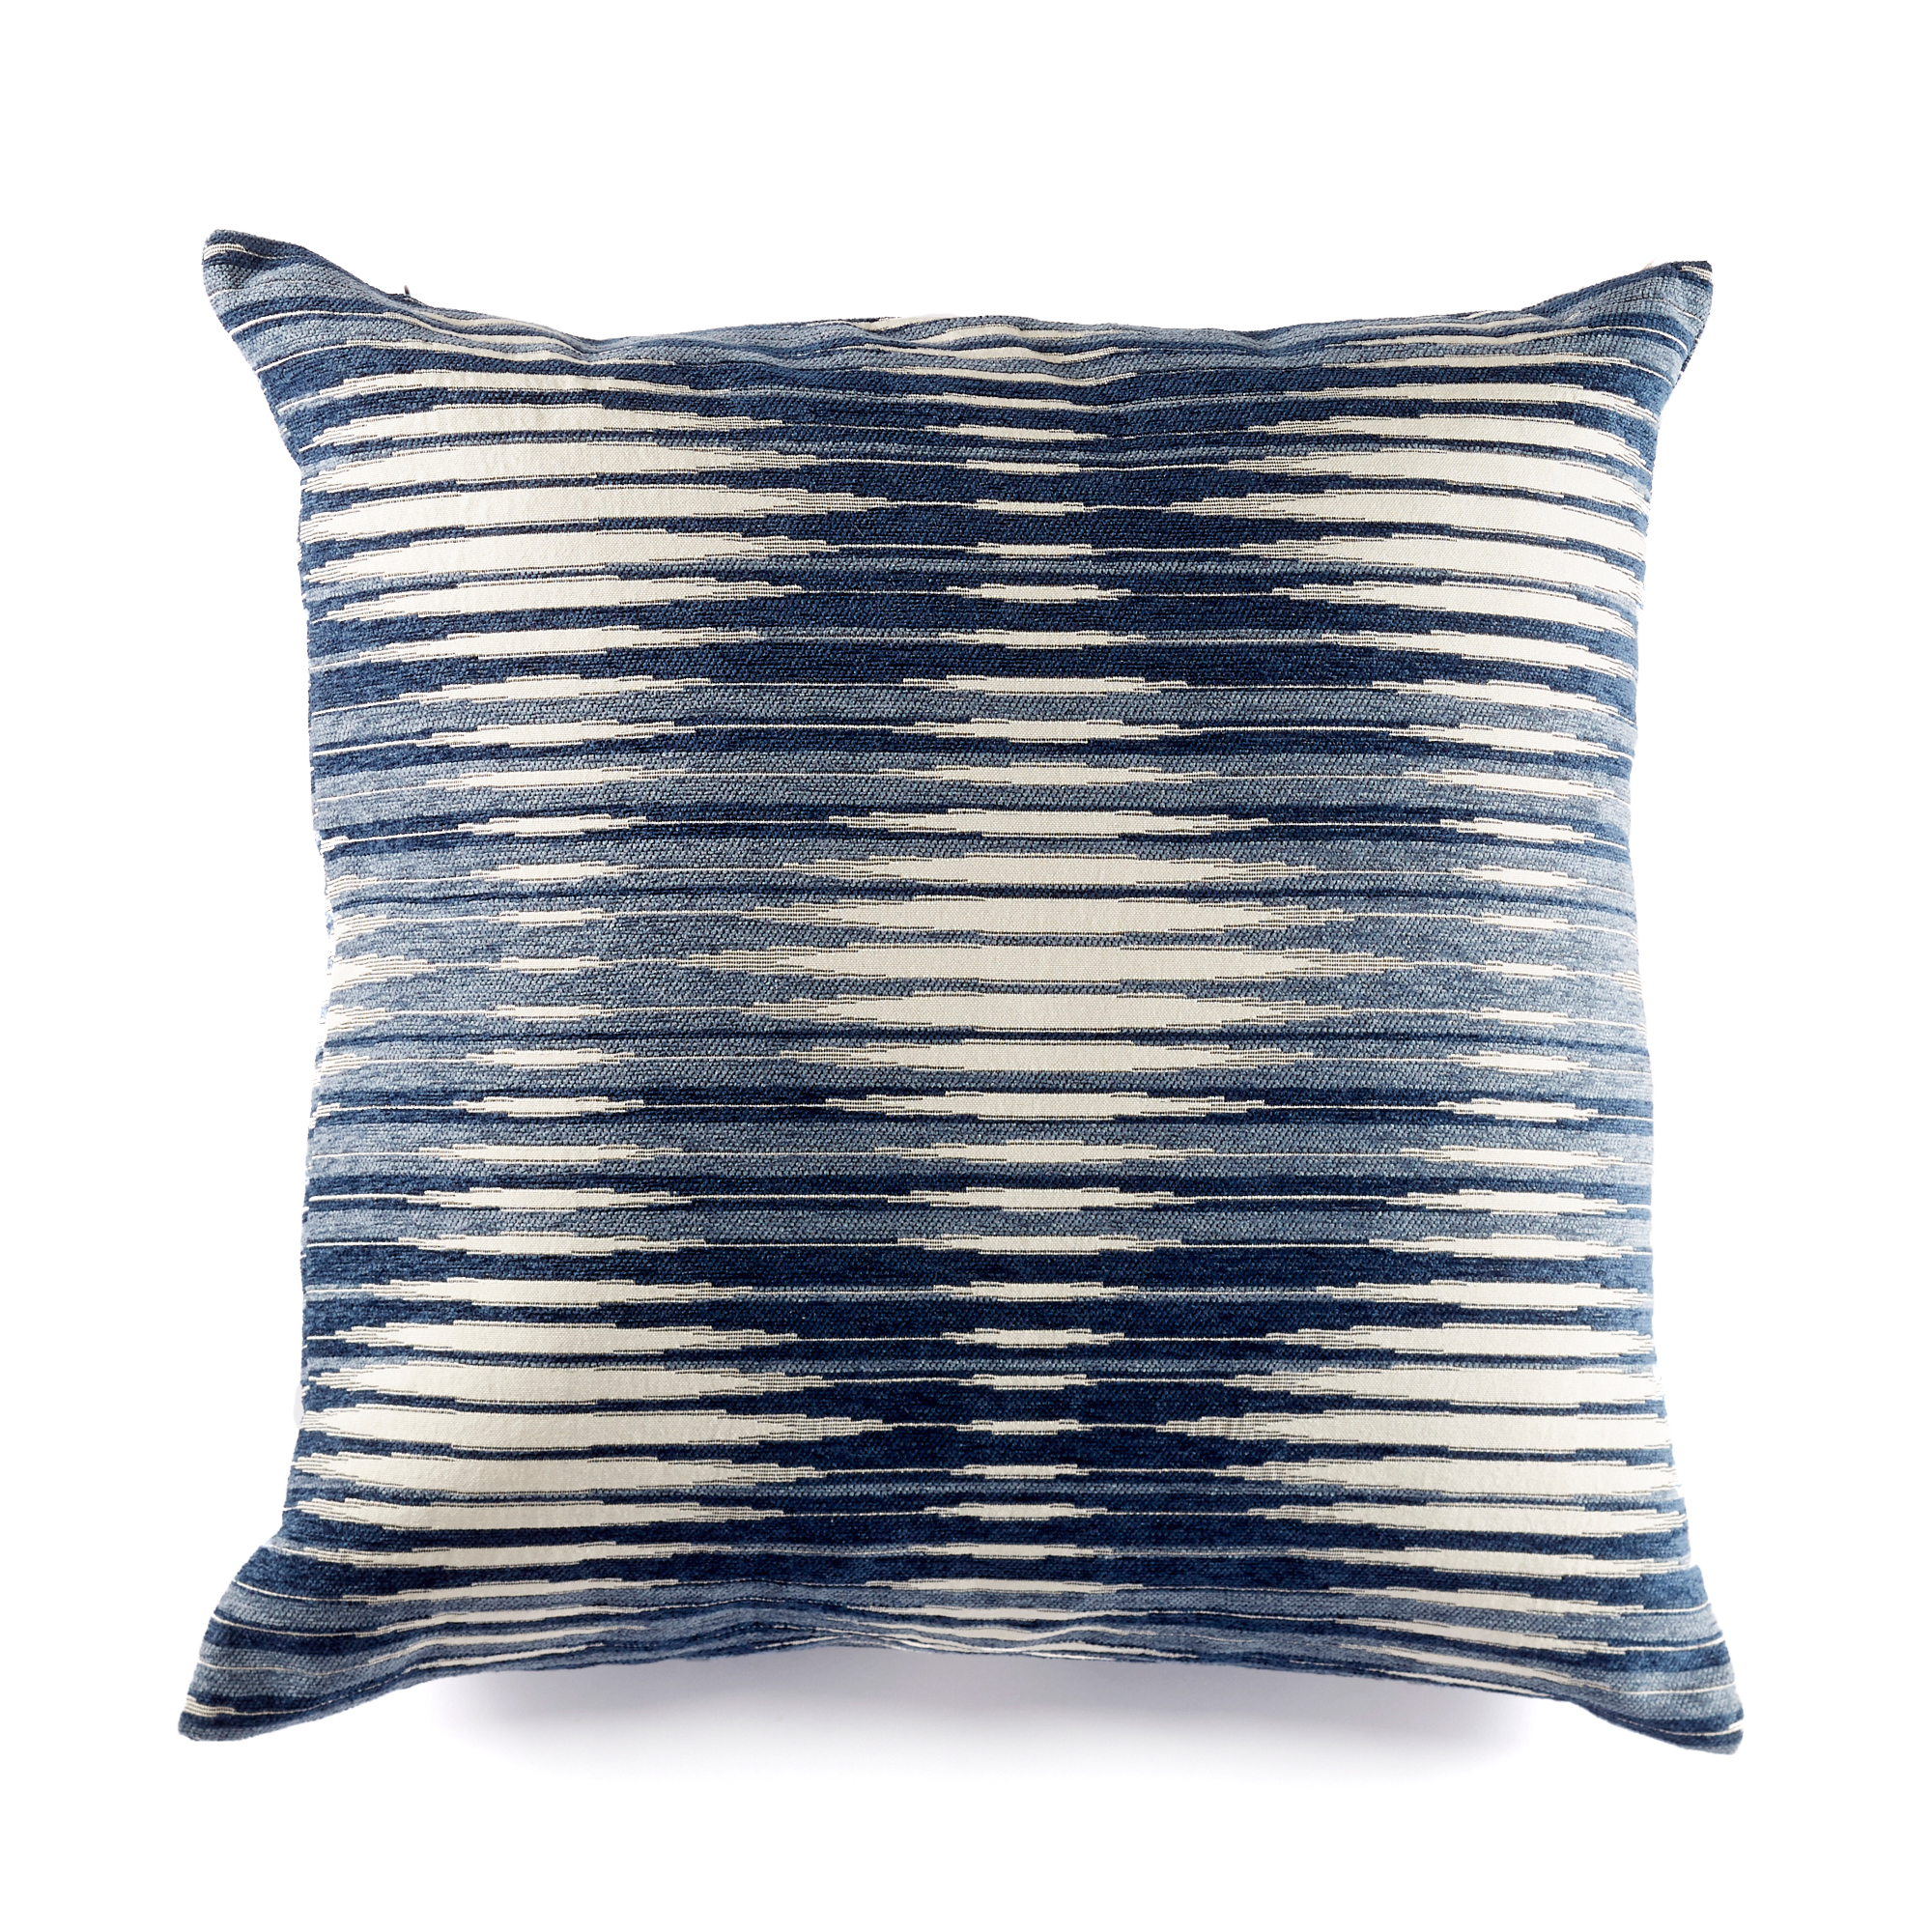 Geo Striped Jacquard-Woven Pillows, Accordion